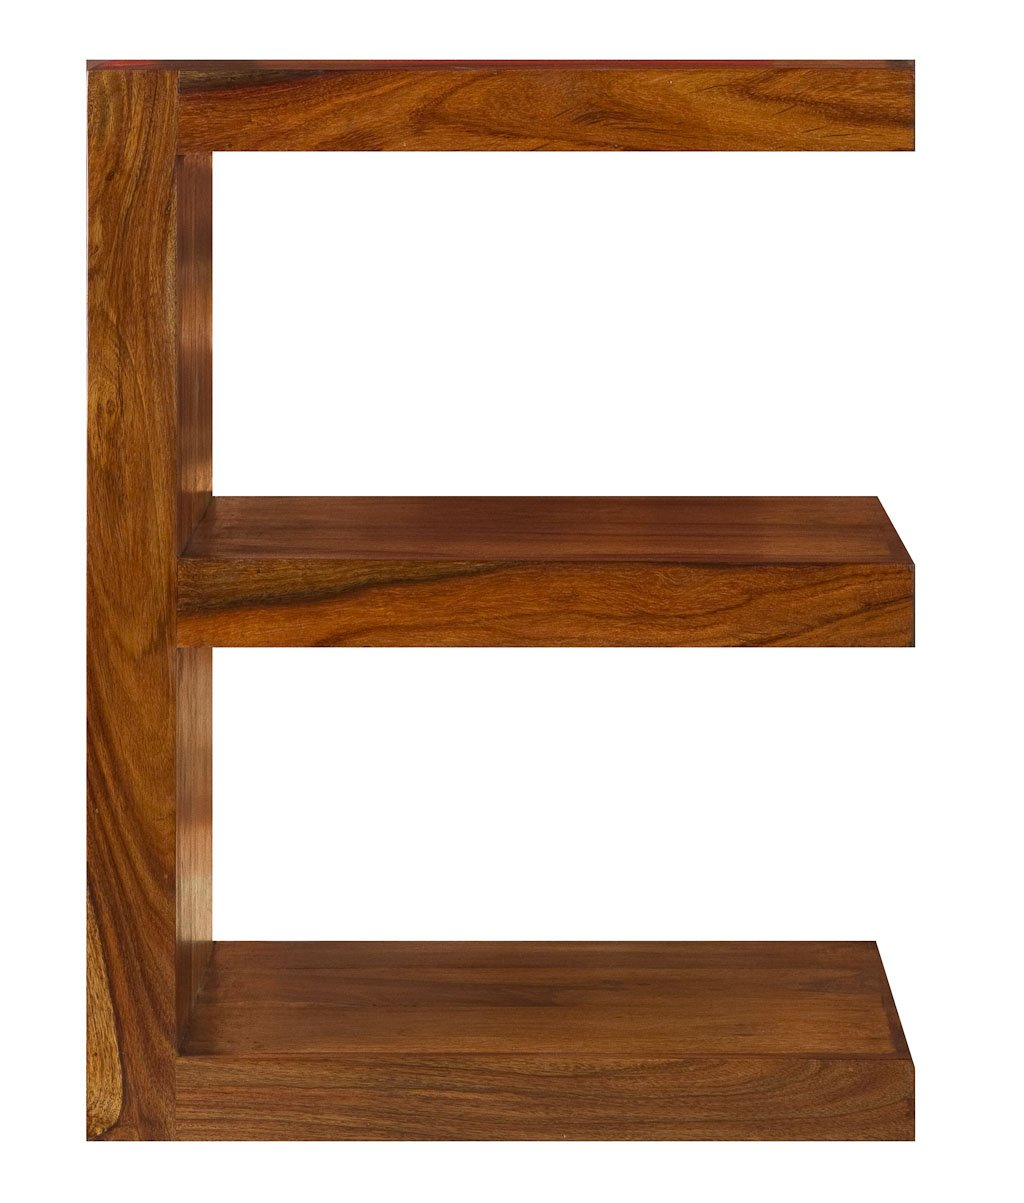 Cube indian rosewood e shaped display unit solid sheesham indian rosewood quirky table modern living room furniture amazon co uk kitchen home